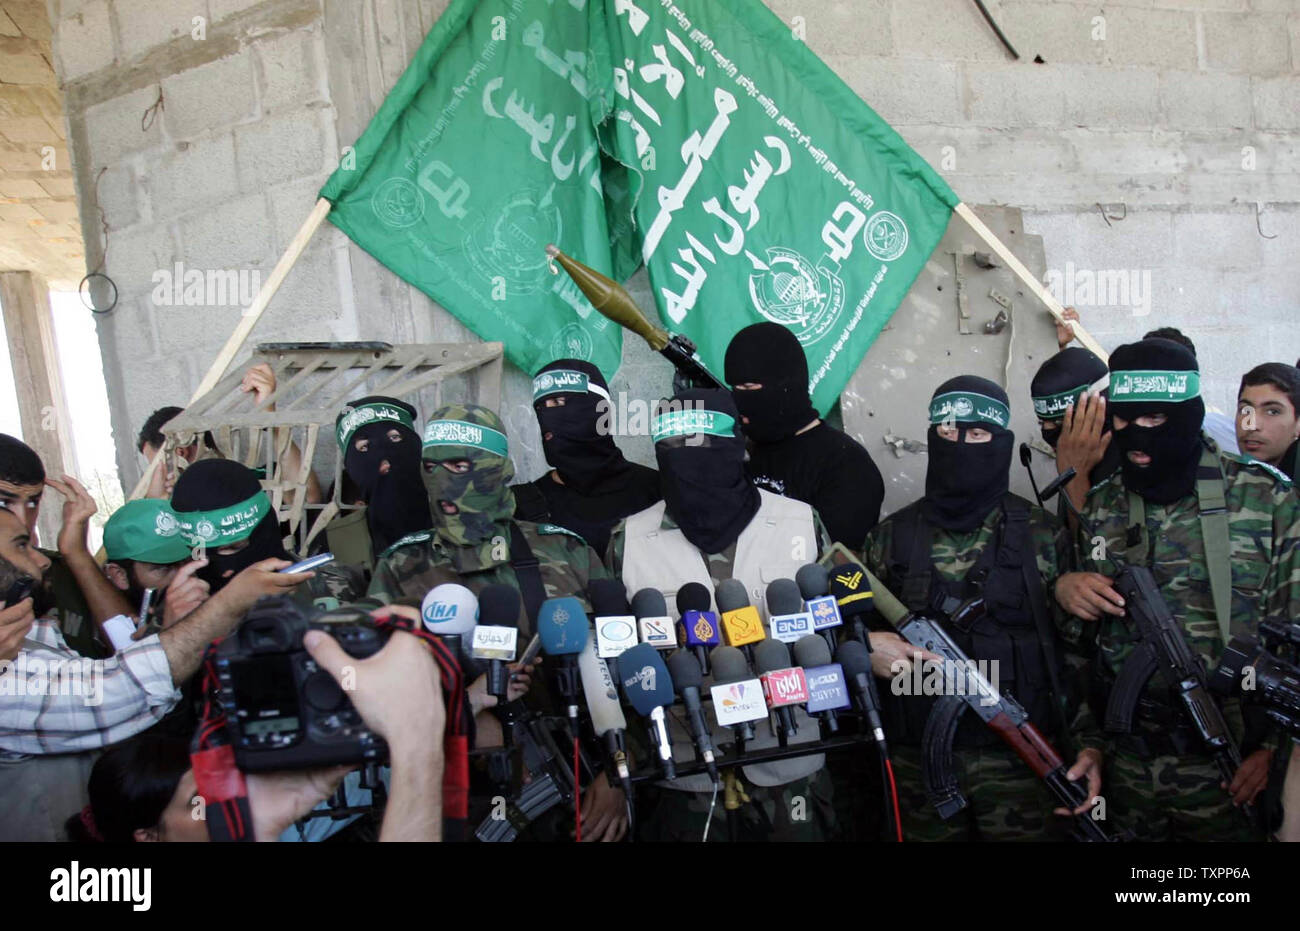 The military wing of Hamas, the Ezz El-Deen Al-Qassam Brigades, gives a news conference in Beit Lahia in northern Gaza on July 8, 2006. According to sources, Israel has pulled out its forces from the town of Beit Lahia following the death of 35 Palestinians and one Israeli soldier since Israel launched a large scale military operation in Gaza this week aimed at preventing rocket attacks and securing the release of a captured soldier.  (UPI Photo/Ismael Mohamad) - Stock Image